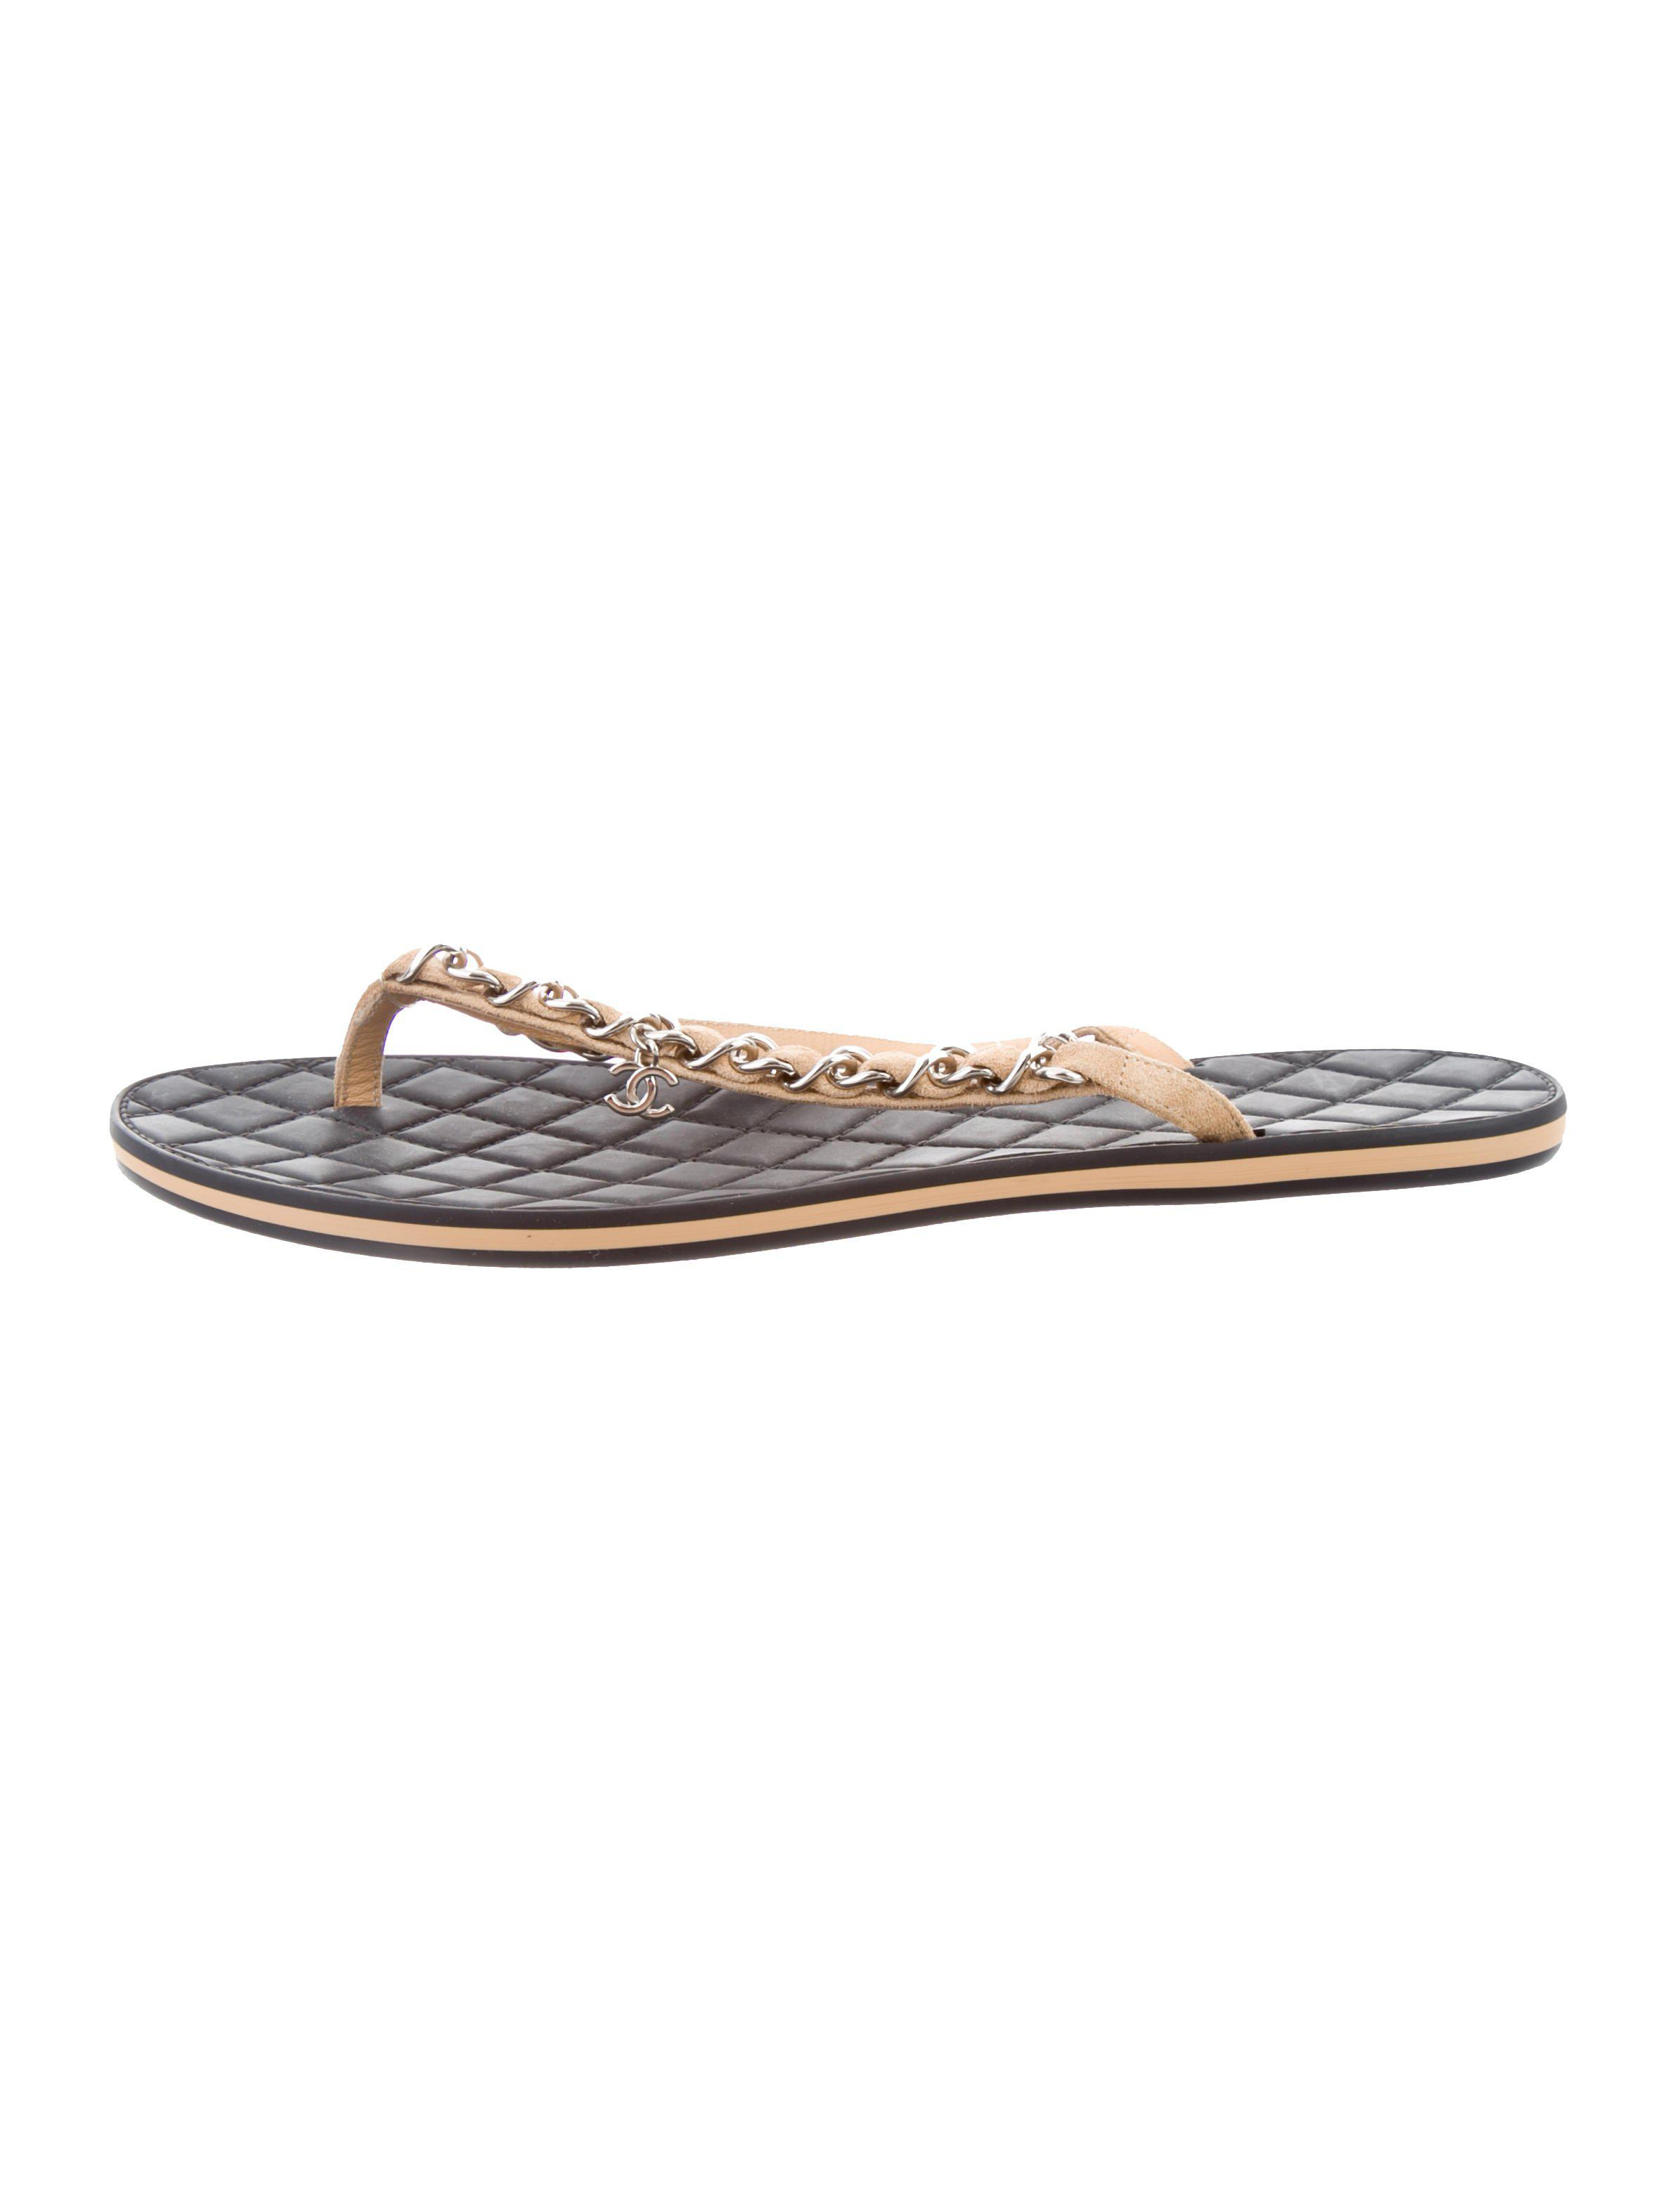 92efb10a1a4a85 Lyst - Chanel Chain-link Thong Sandals Beige in Natural